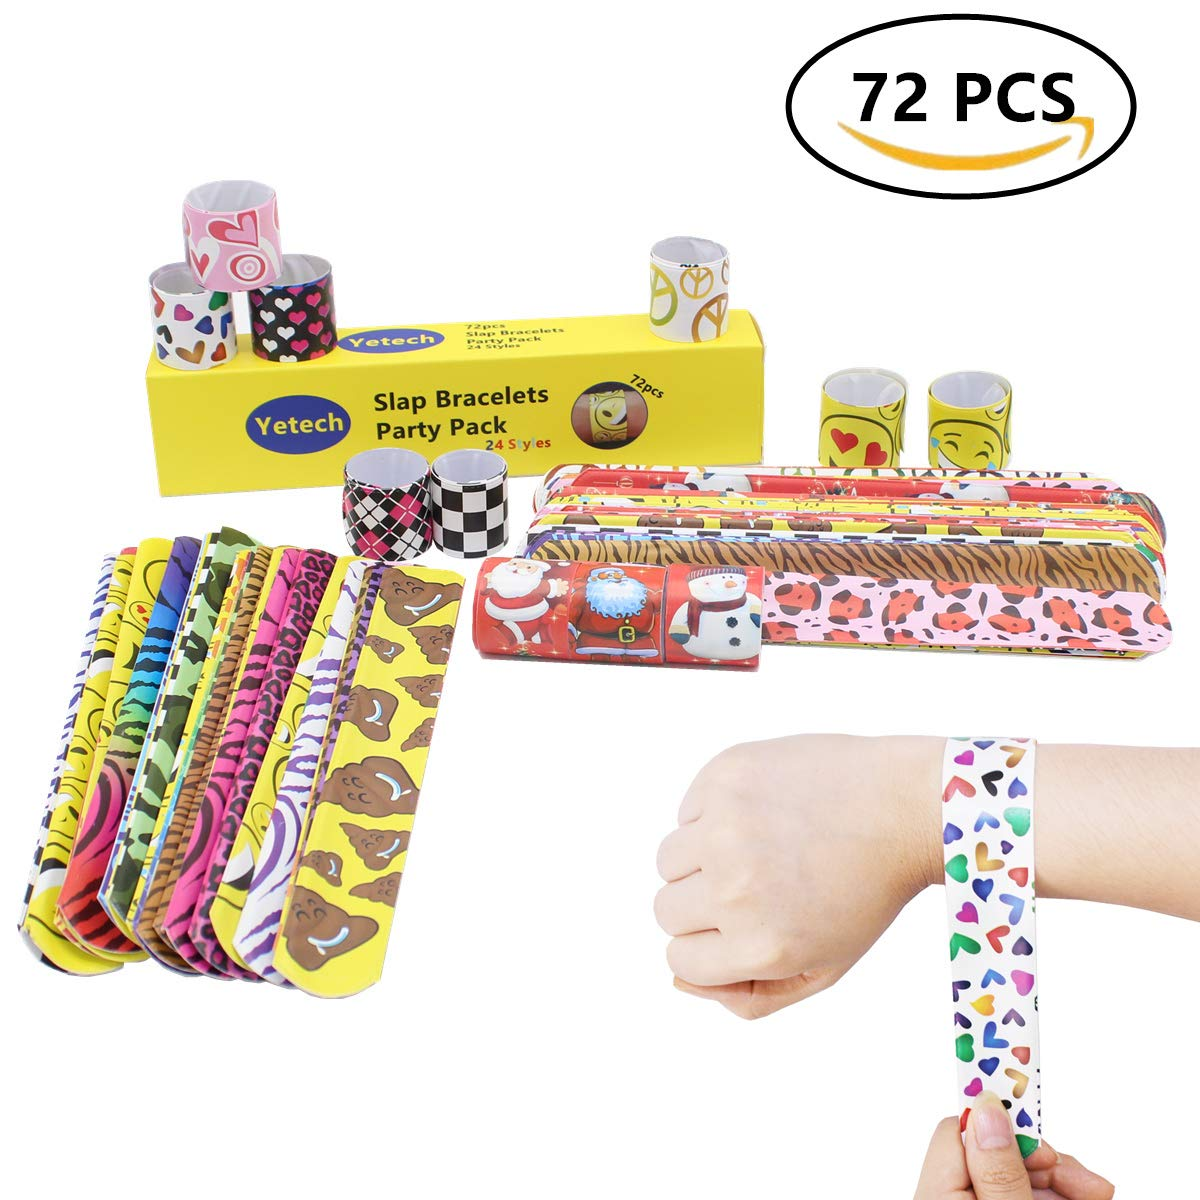 Yetech 72pcs Slap Bracelets Slap Bands Party Bag Fillers for Kids, Fun and Super High Quality Perfect for Kids Party Gift